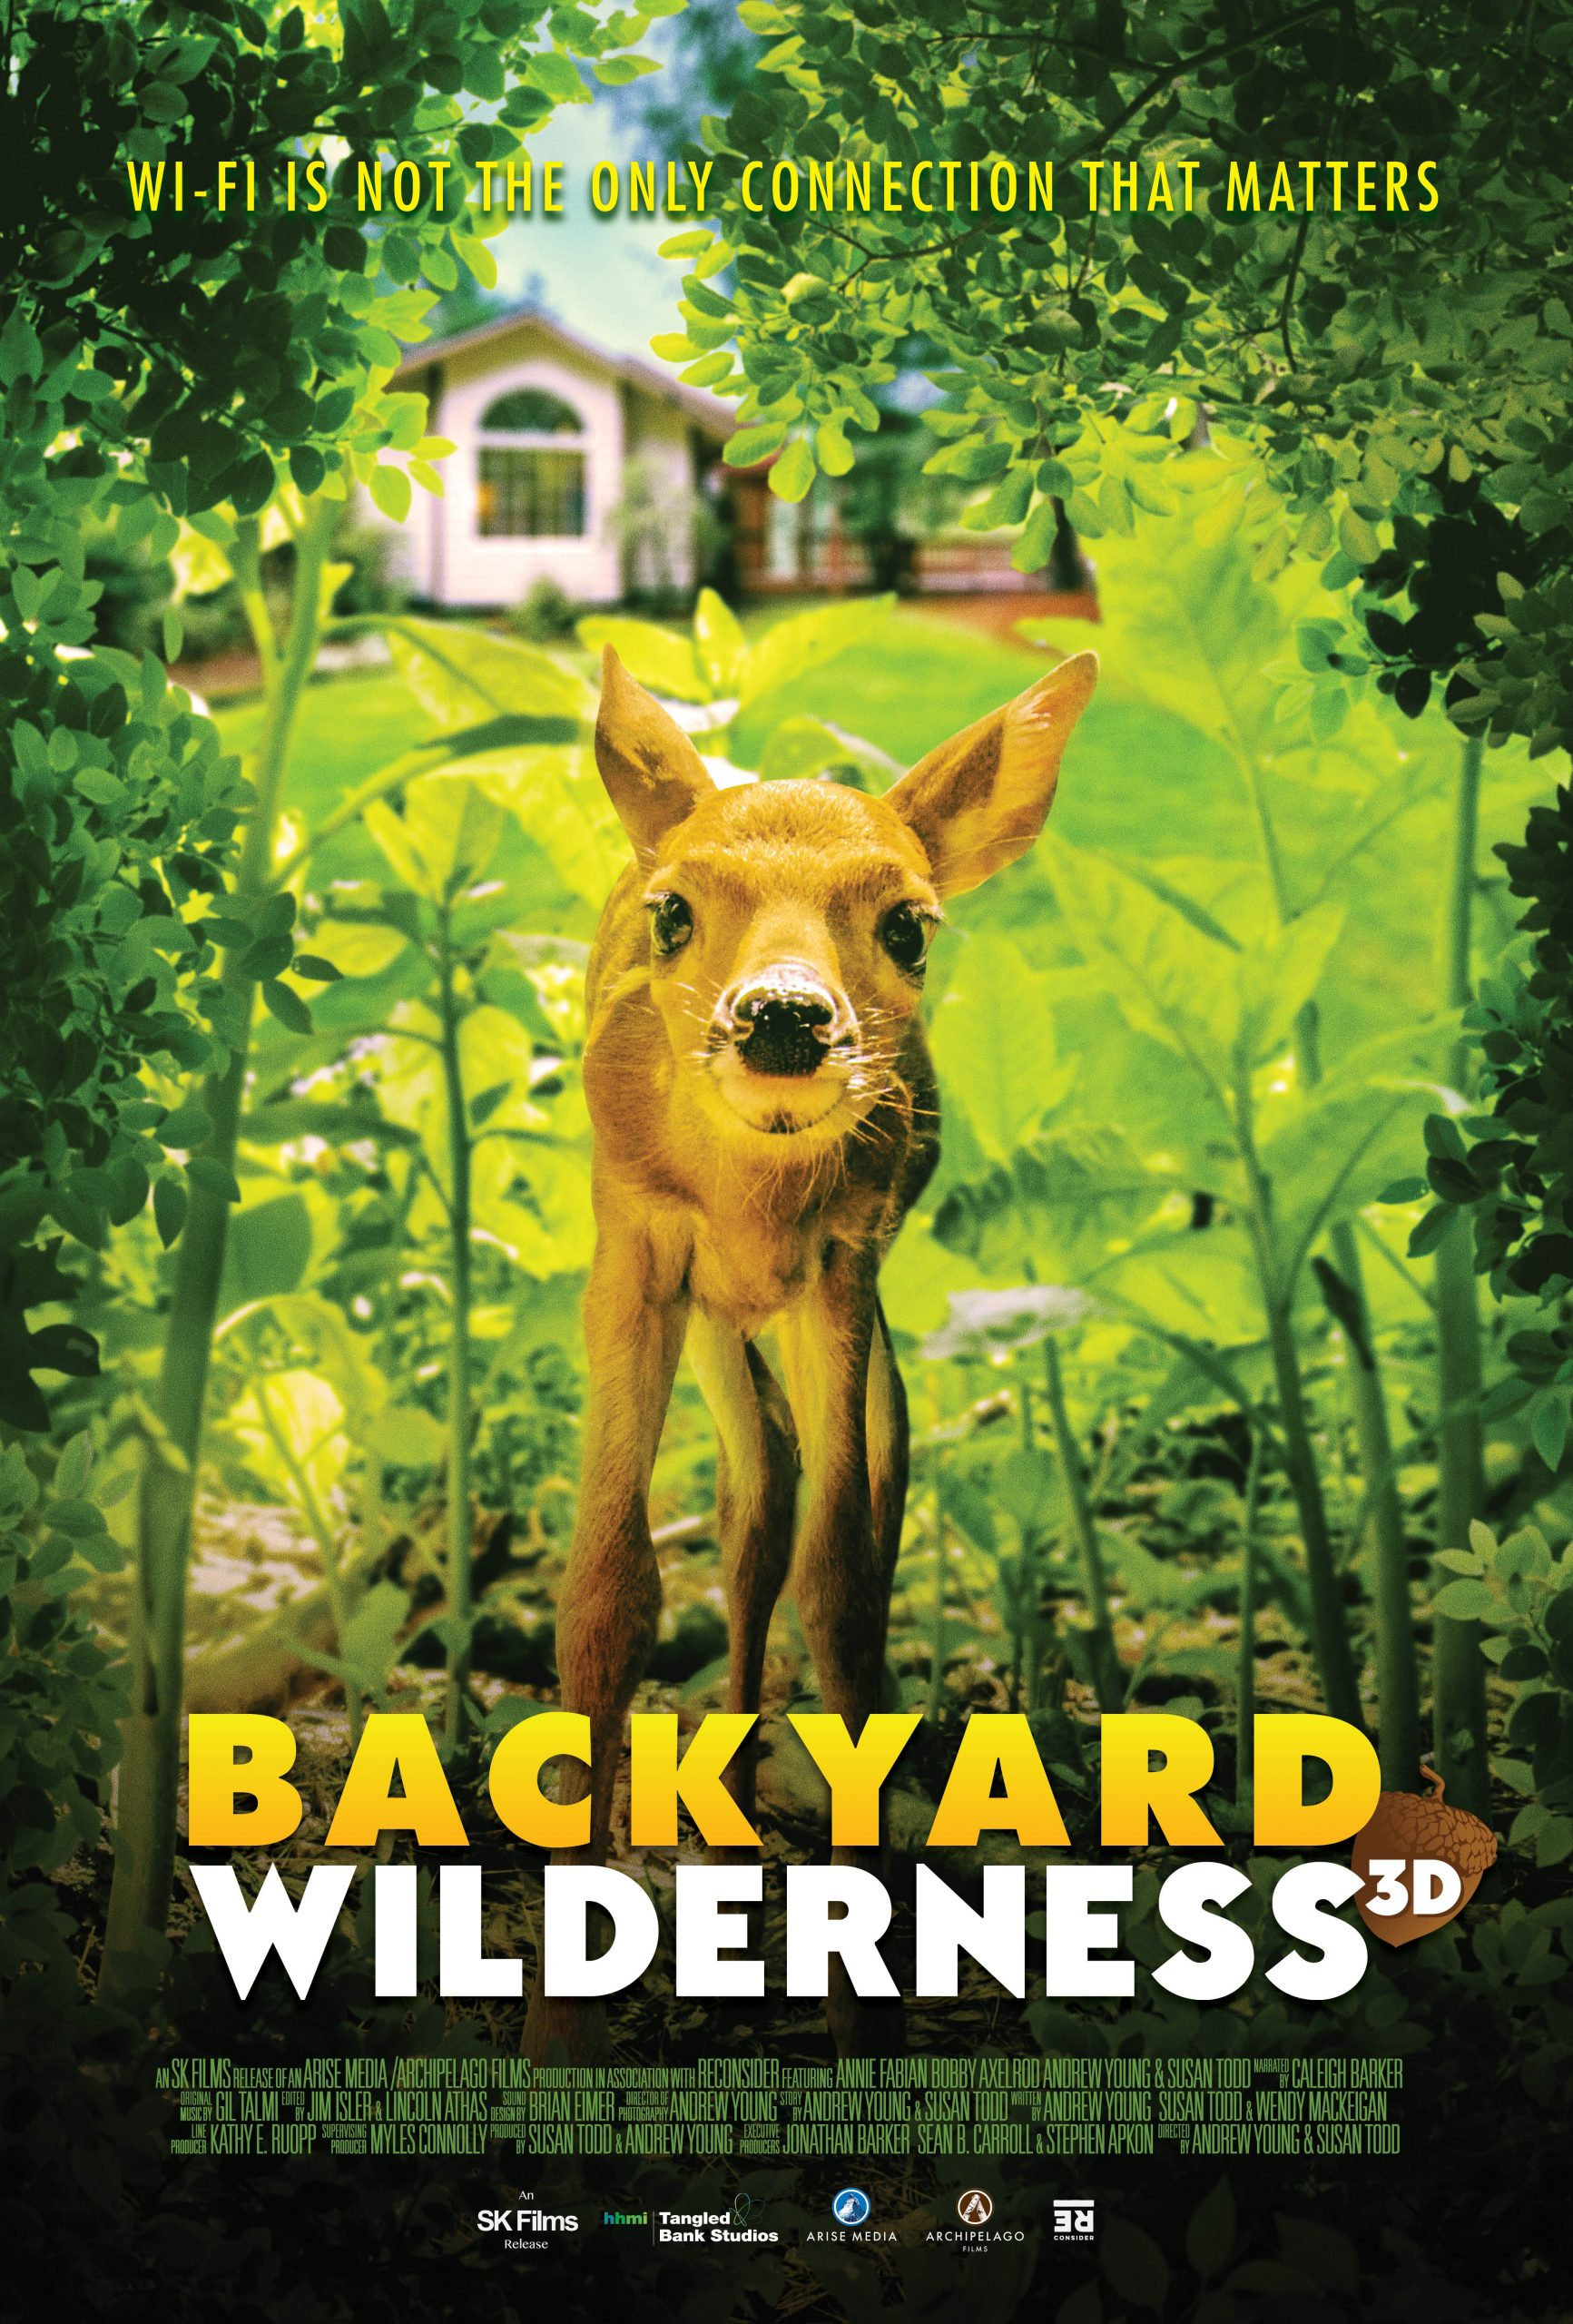 Backyard Wilderness movie poster